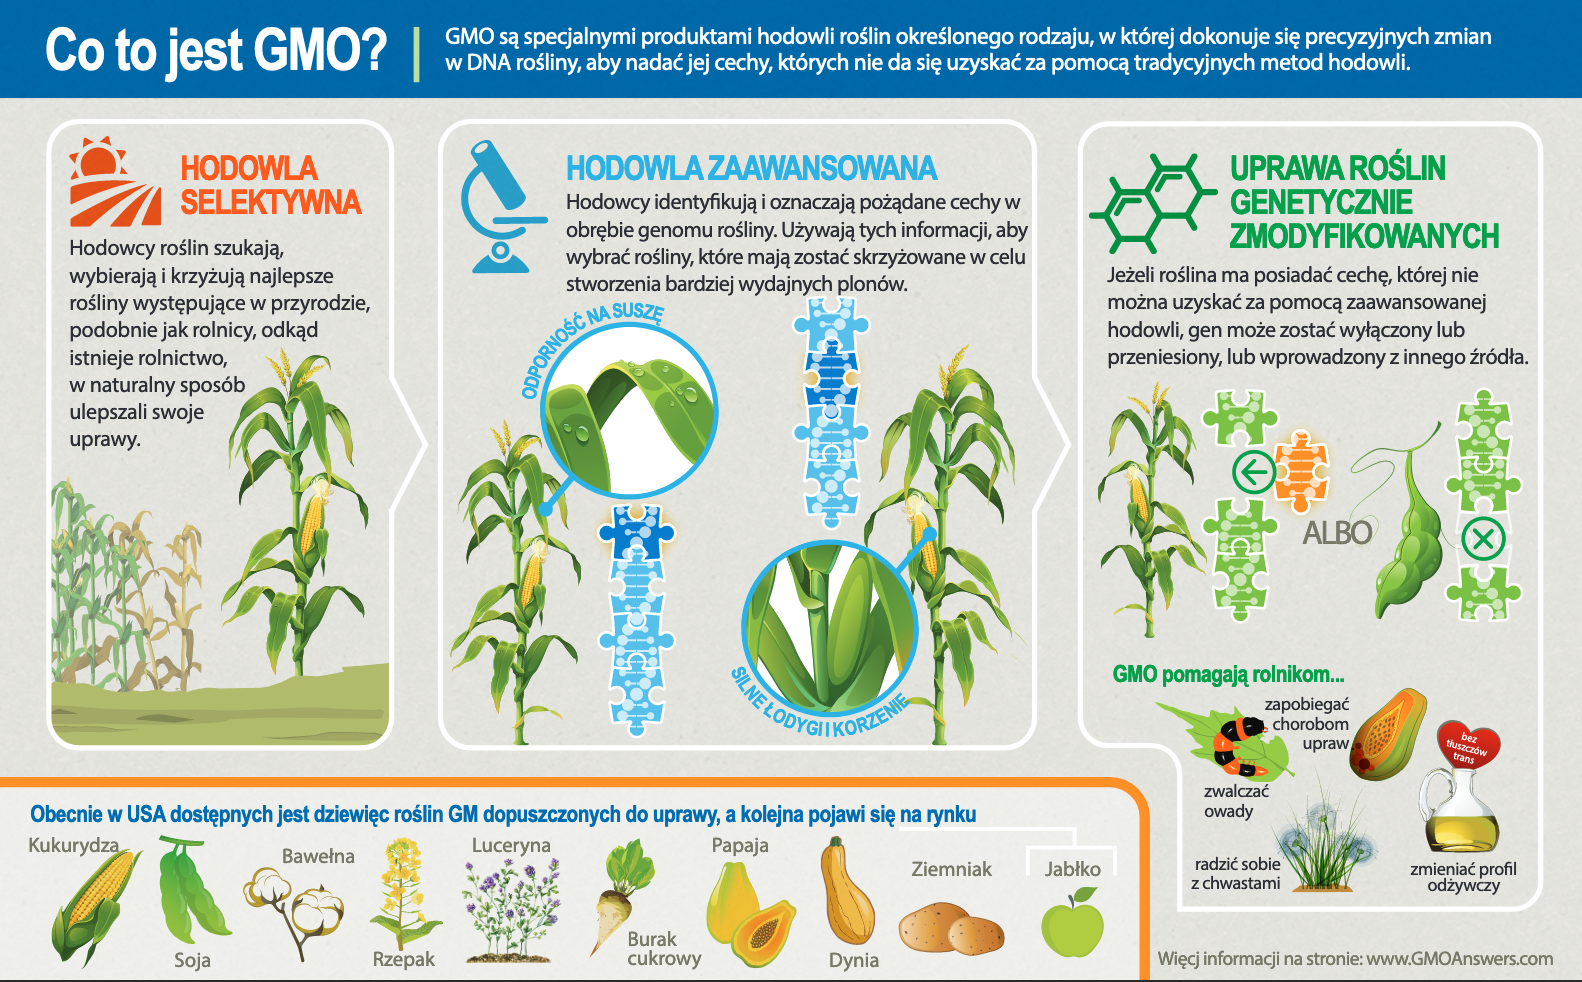 Infographic - What is a GMO